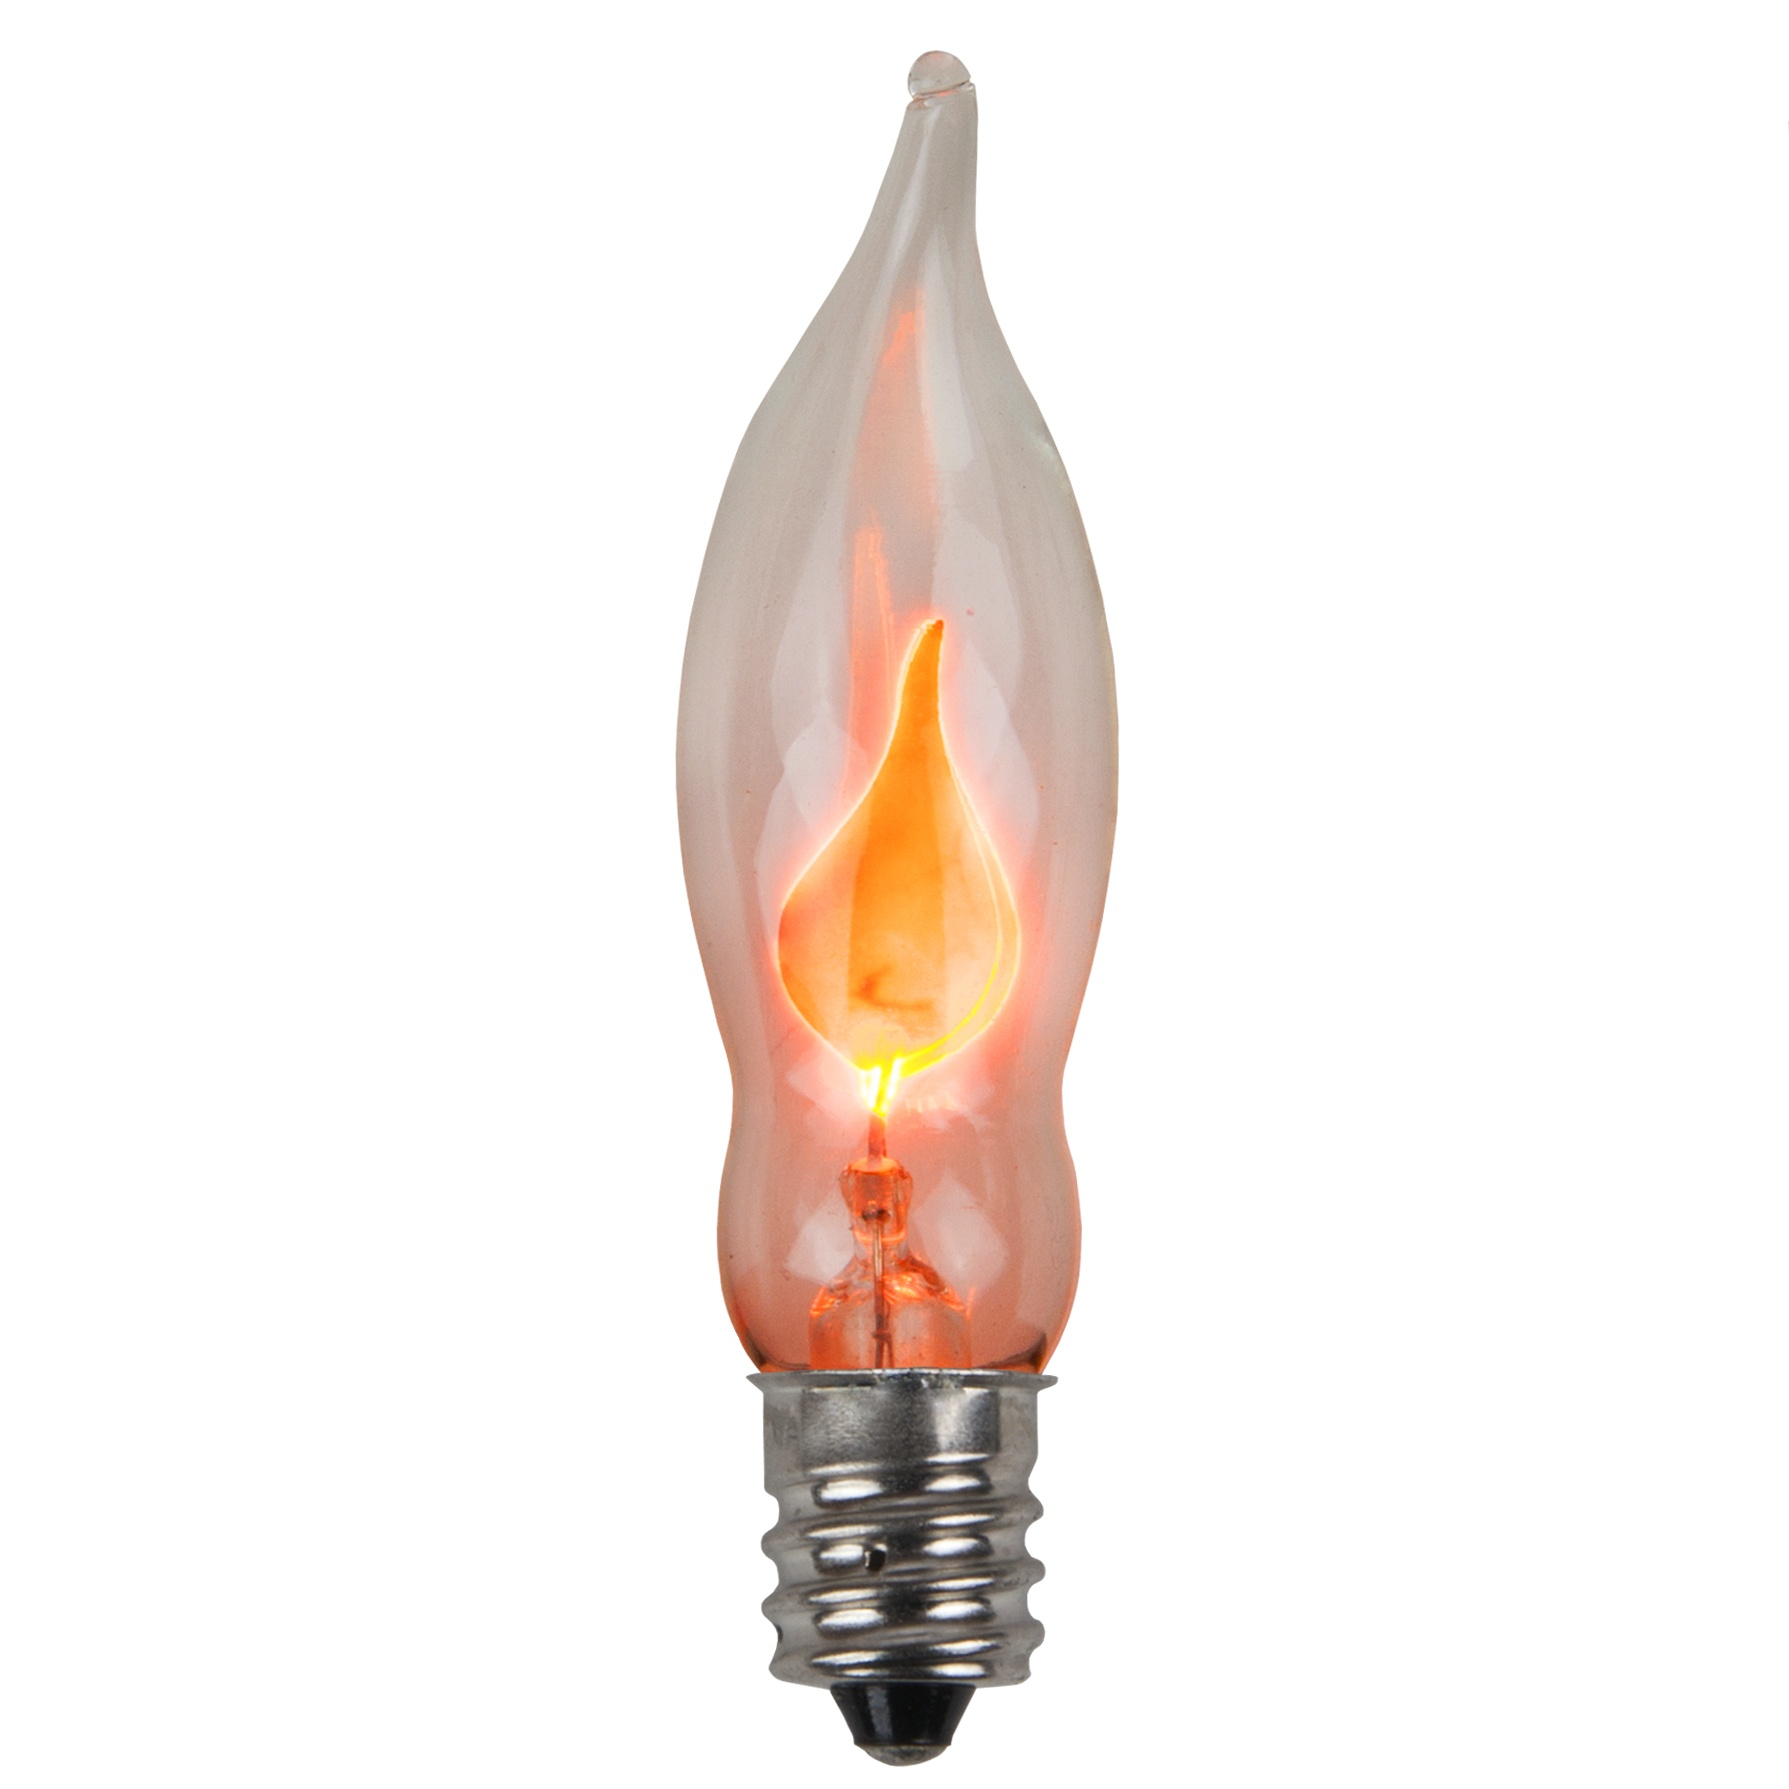 C7 christmas light bulb c7 flicker flame clear christmas light c7 christmas light bulb c7 flicker flame clear christmas light bulbs pack of 2 mozeypictures Gallery